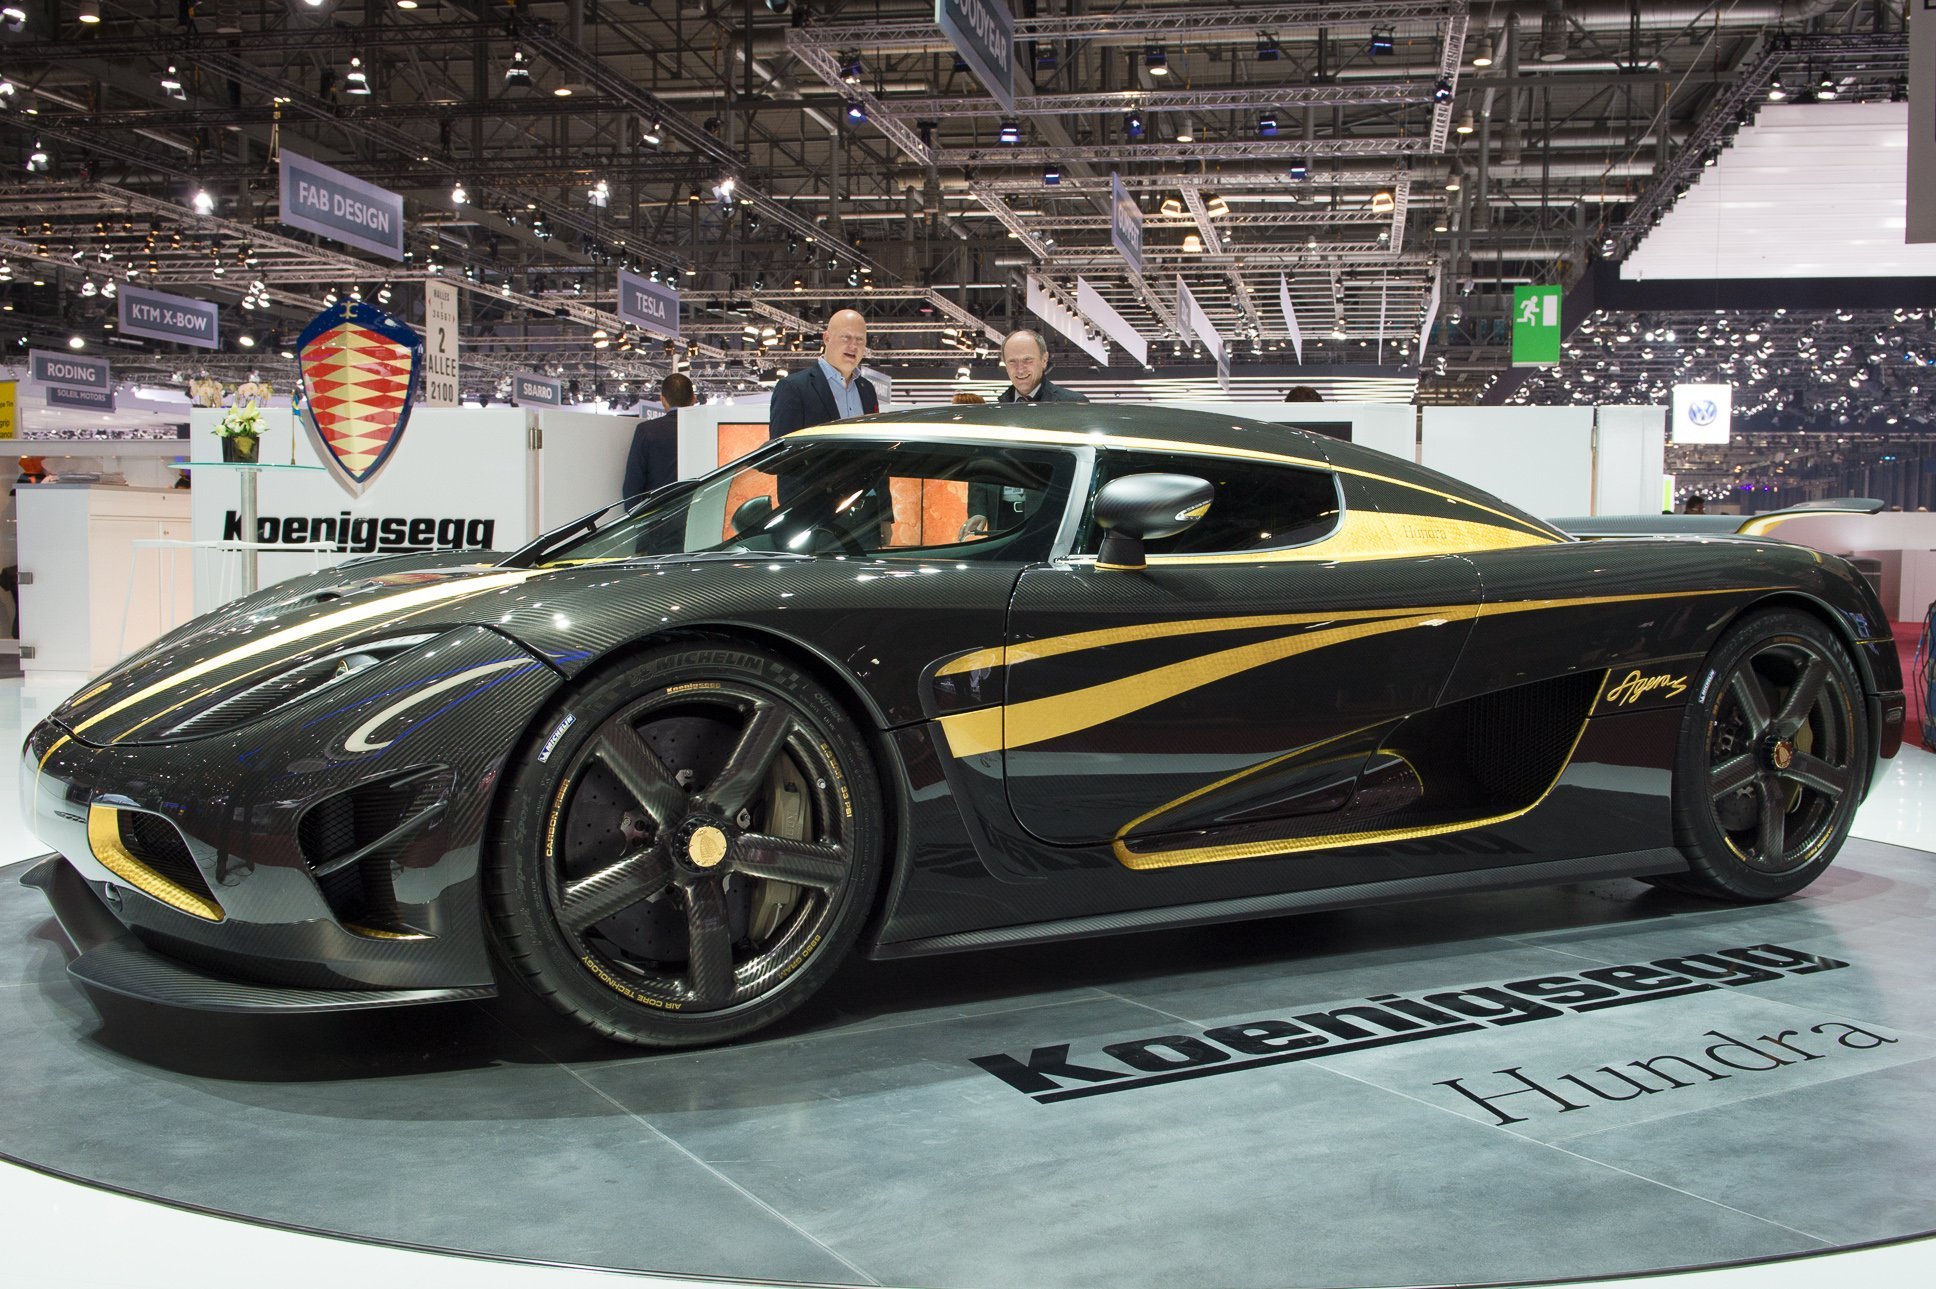 Fotos Genf 2013 Koenigsegg Agera S Hundra 100